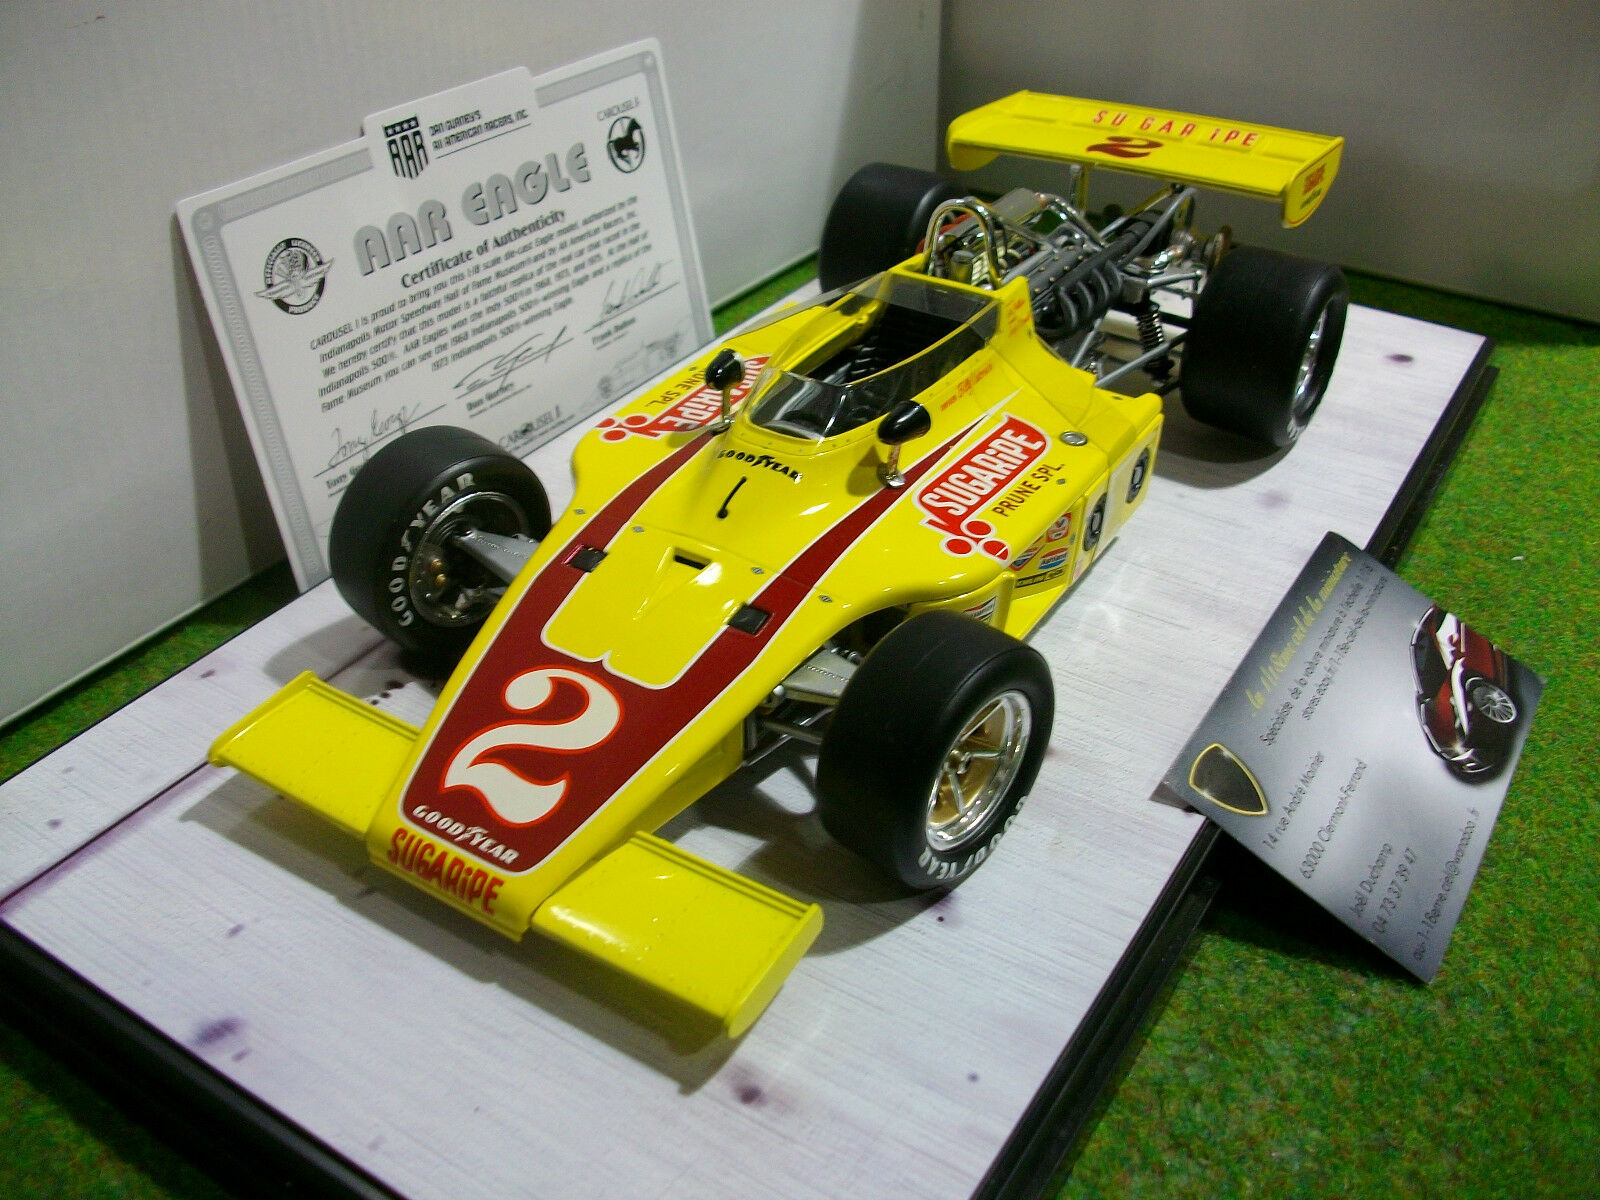 AAR EAGLE Indy car 1973 jne 1 18 CAROUSEL 1 4702 voiture miniature collection